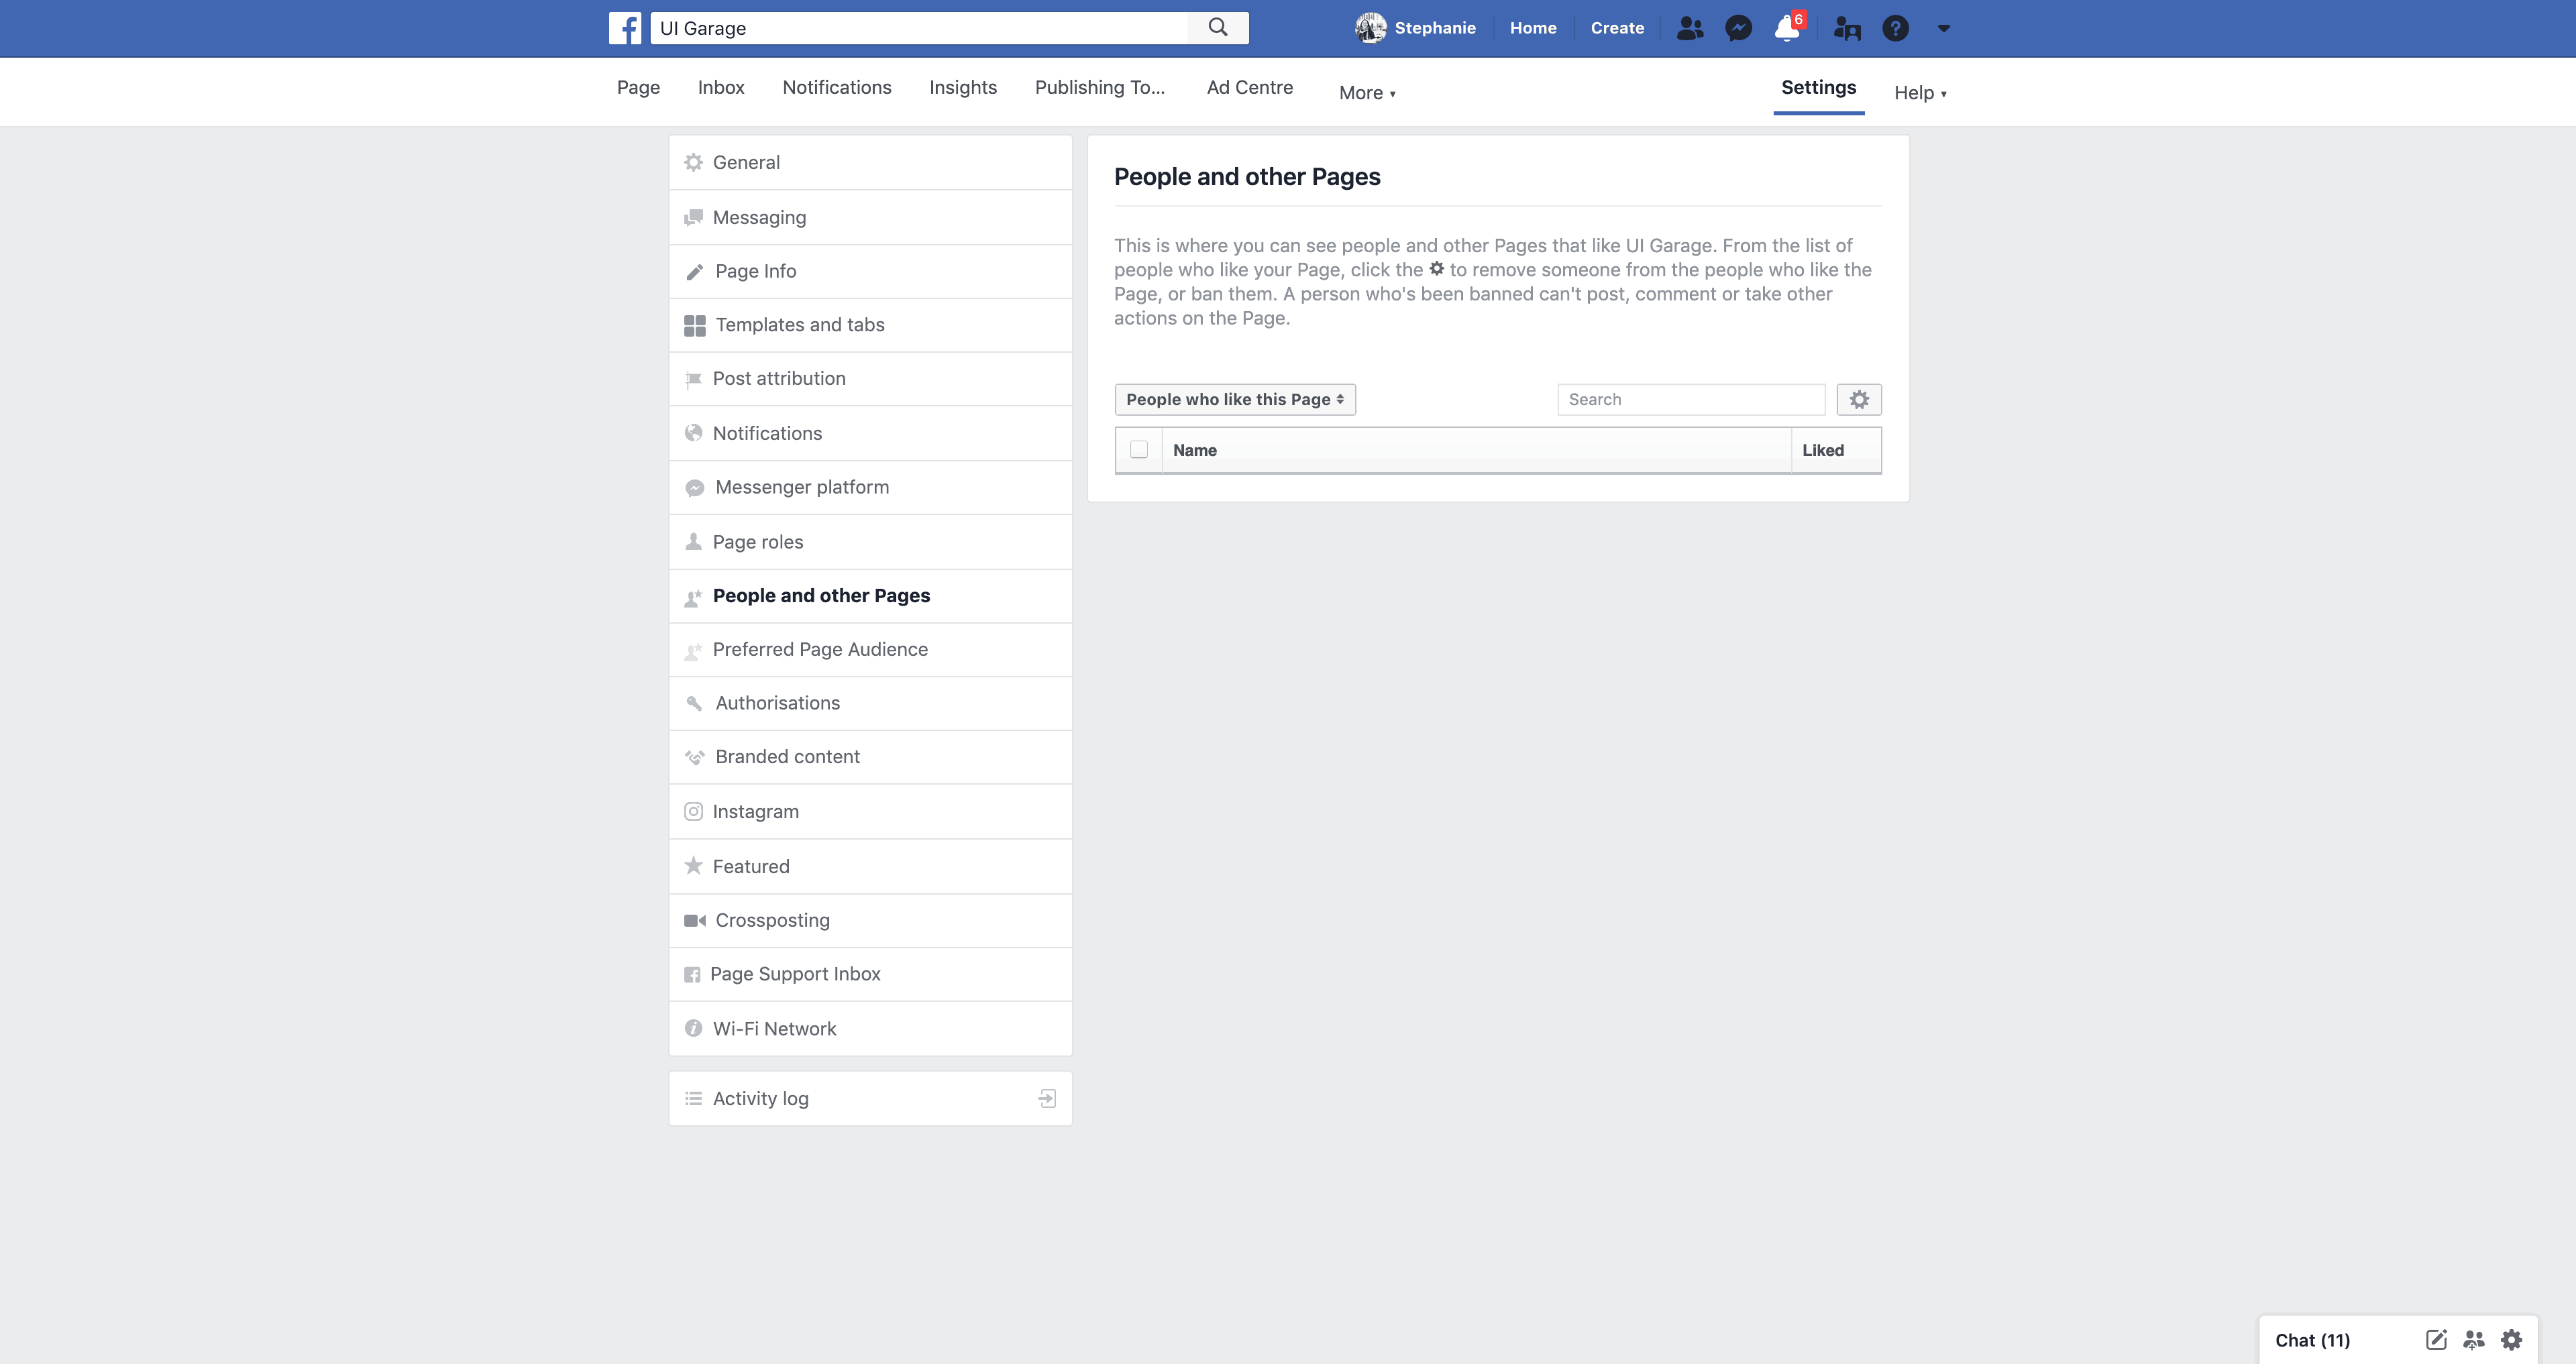 Page's people and other Pages Settings by Facebook